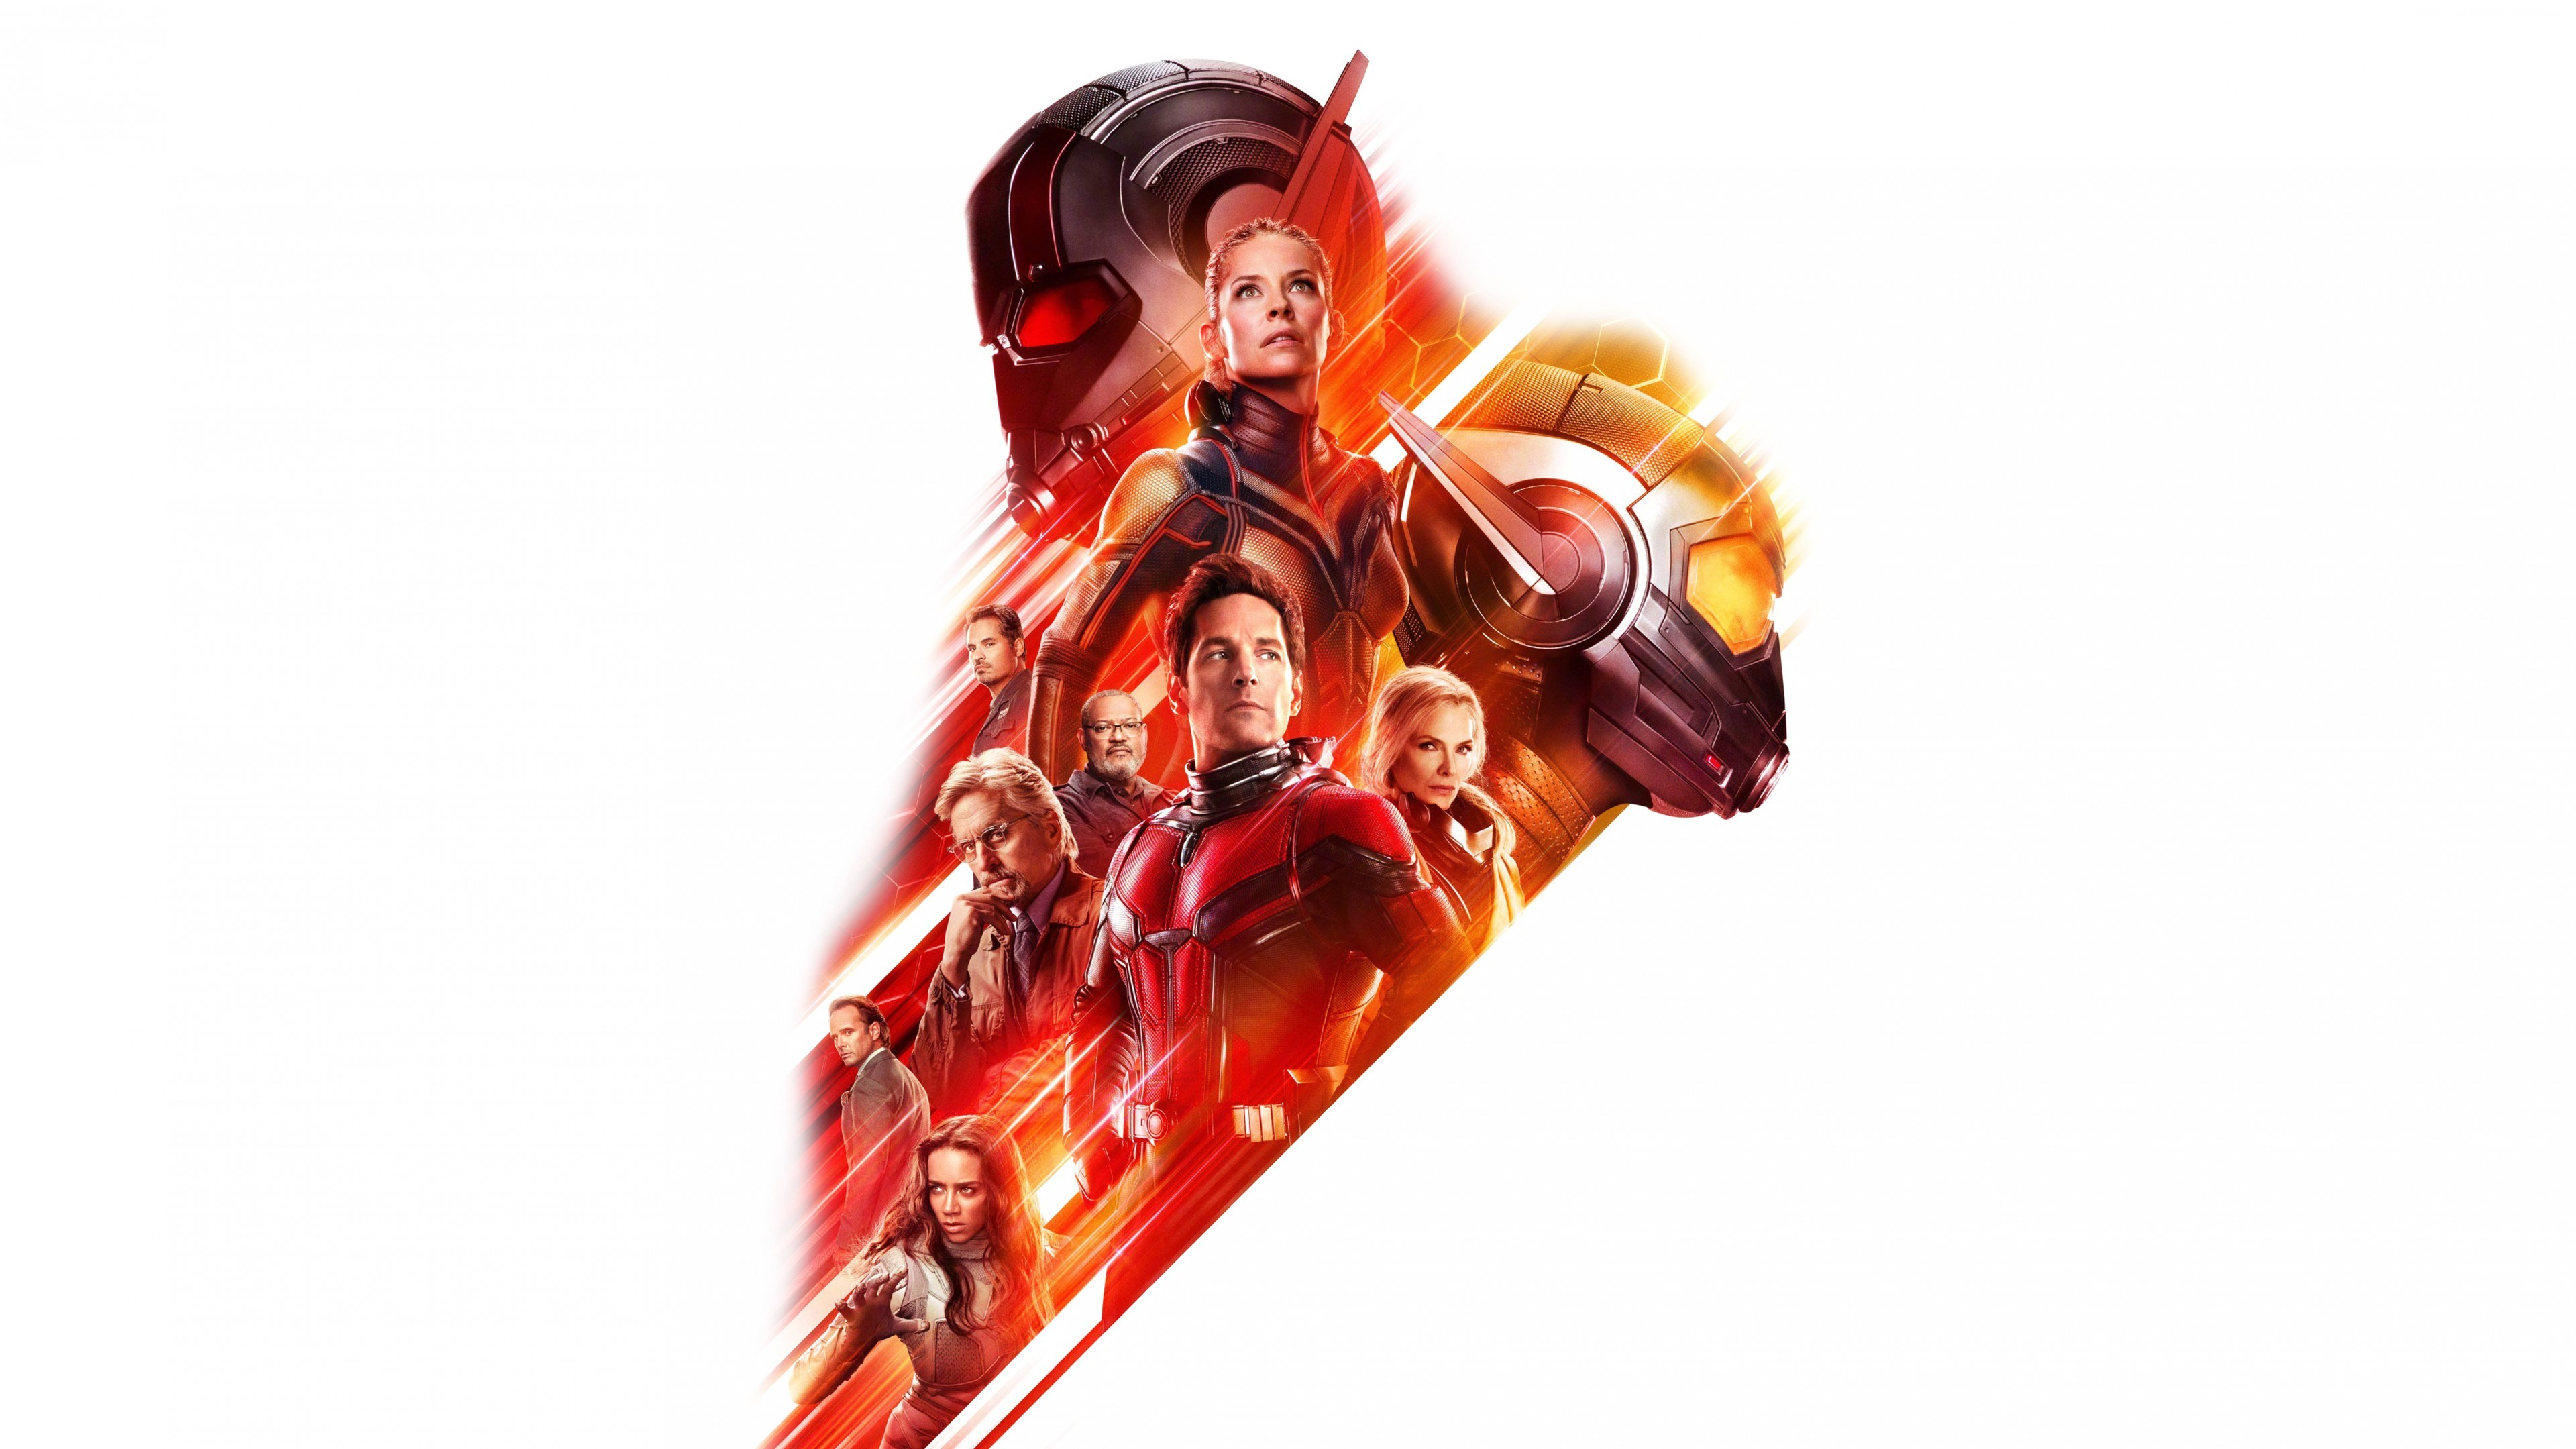 Res: 3840x2160, Ant-Man and the Wasp, Evangeline Lilly, Hannah John-Kamen, Michelle Pfeiffer,  4K, 8K